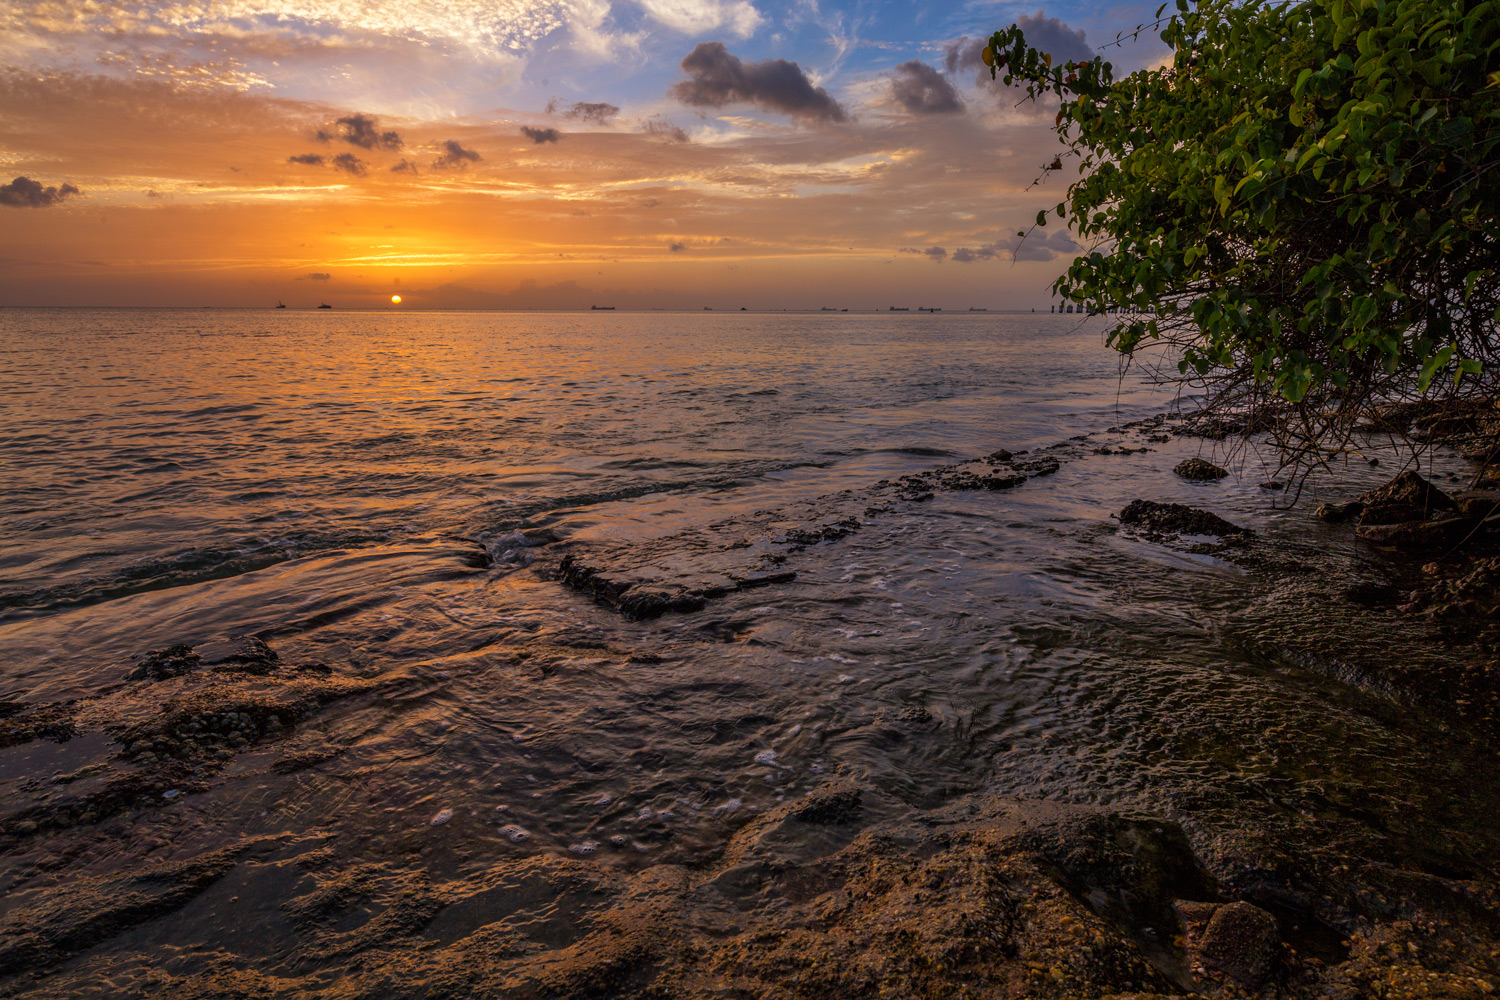 sunset on the water - Using HDR Photography to Your Advantage